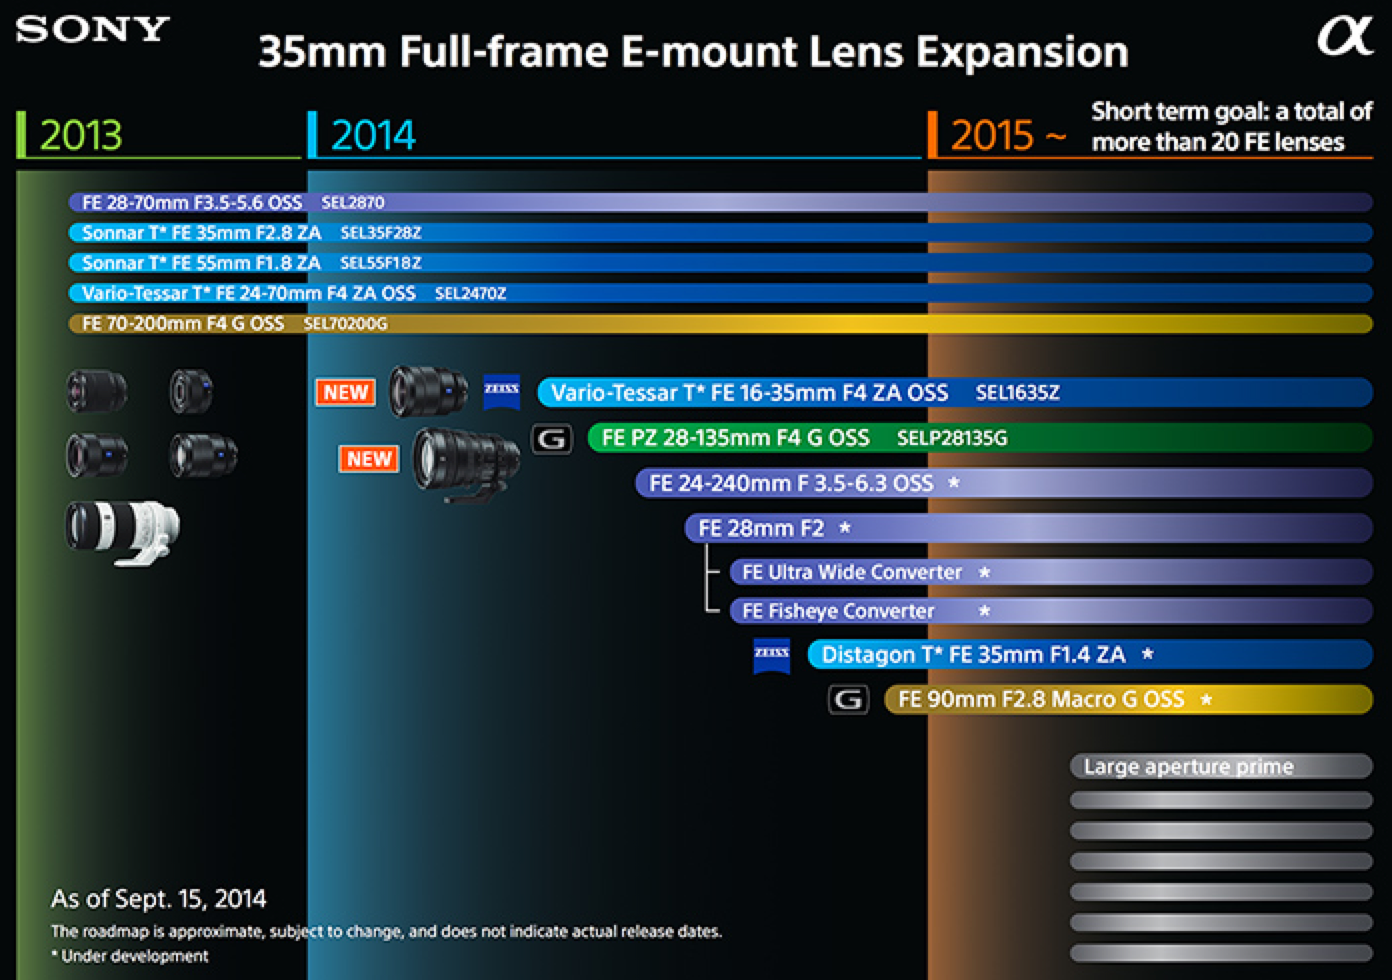 (SR3) Two New Zeiss FE 25mm F/2.0 And 85mm F/1.8 Coming Mid-end 2015?